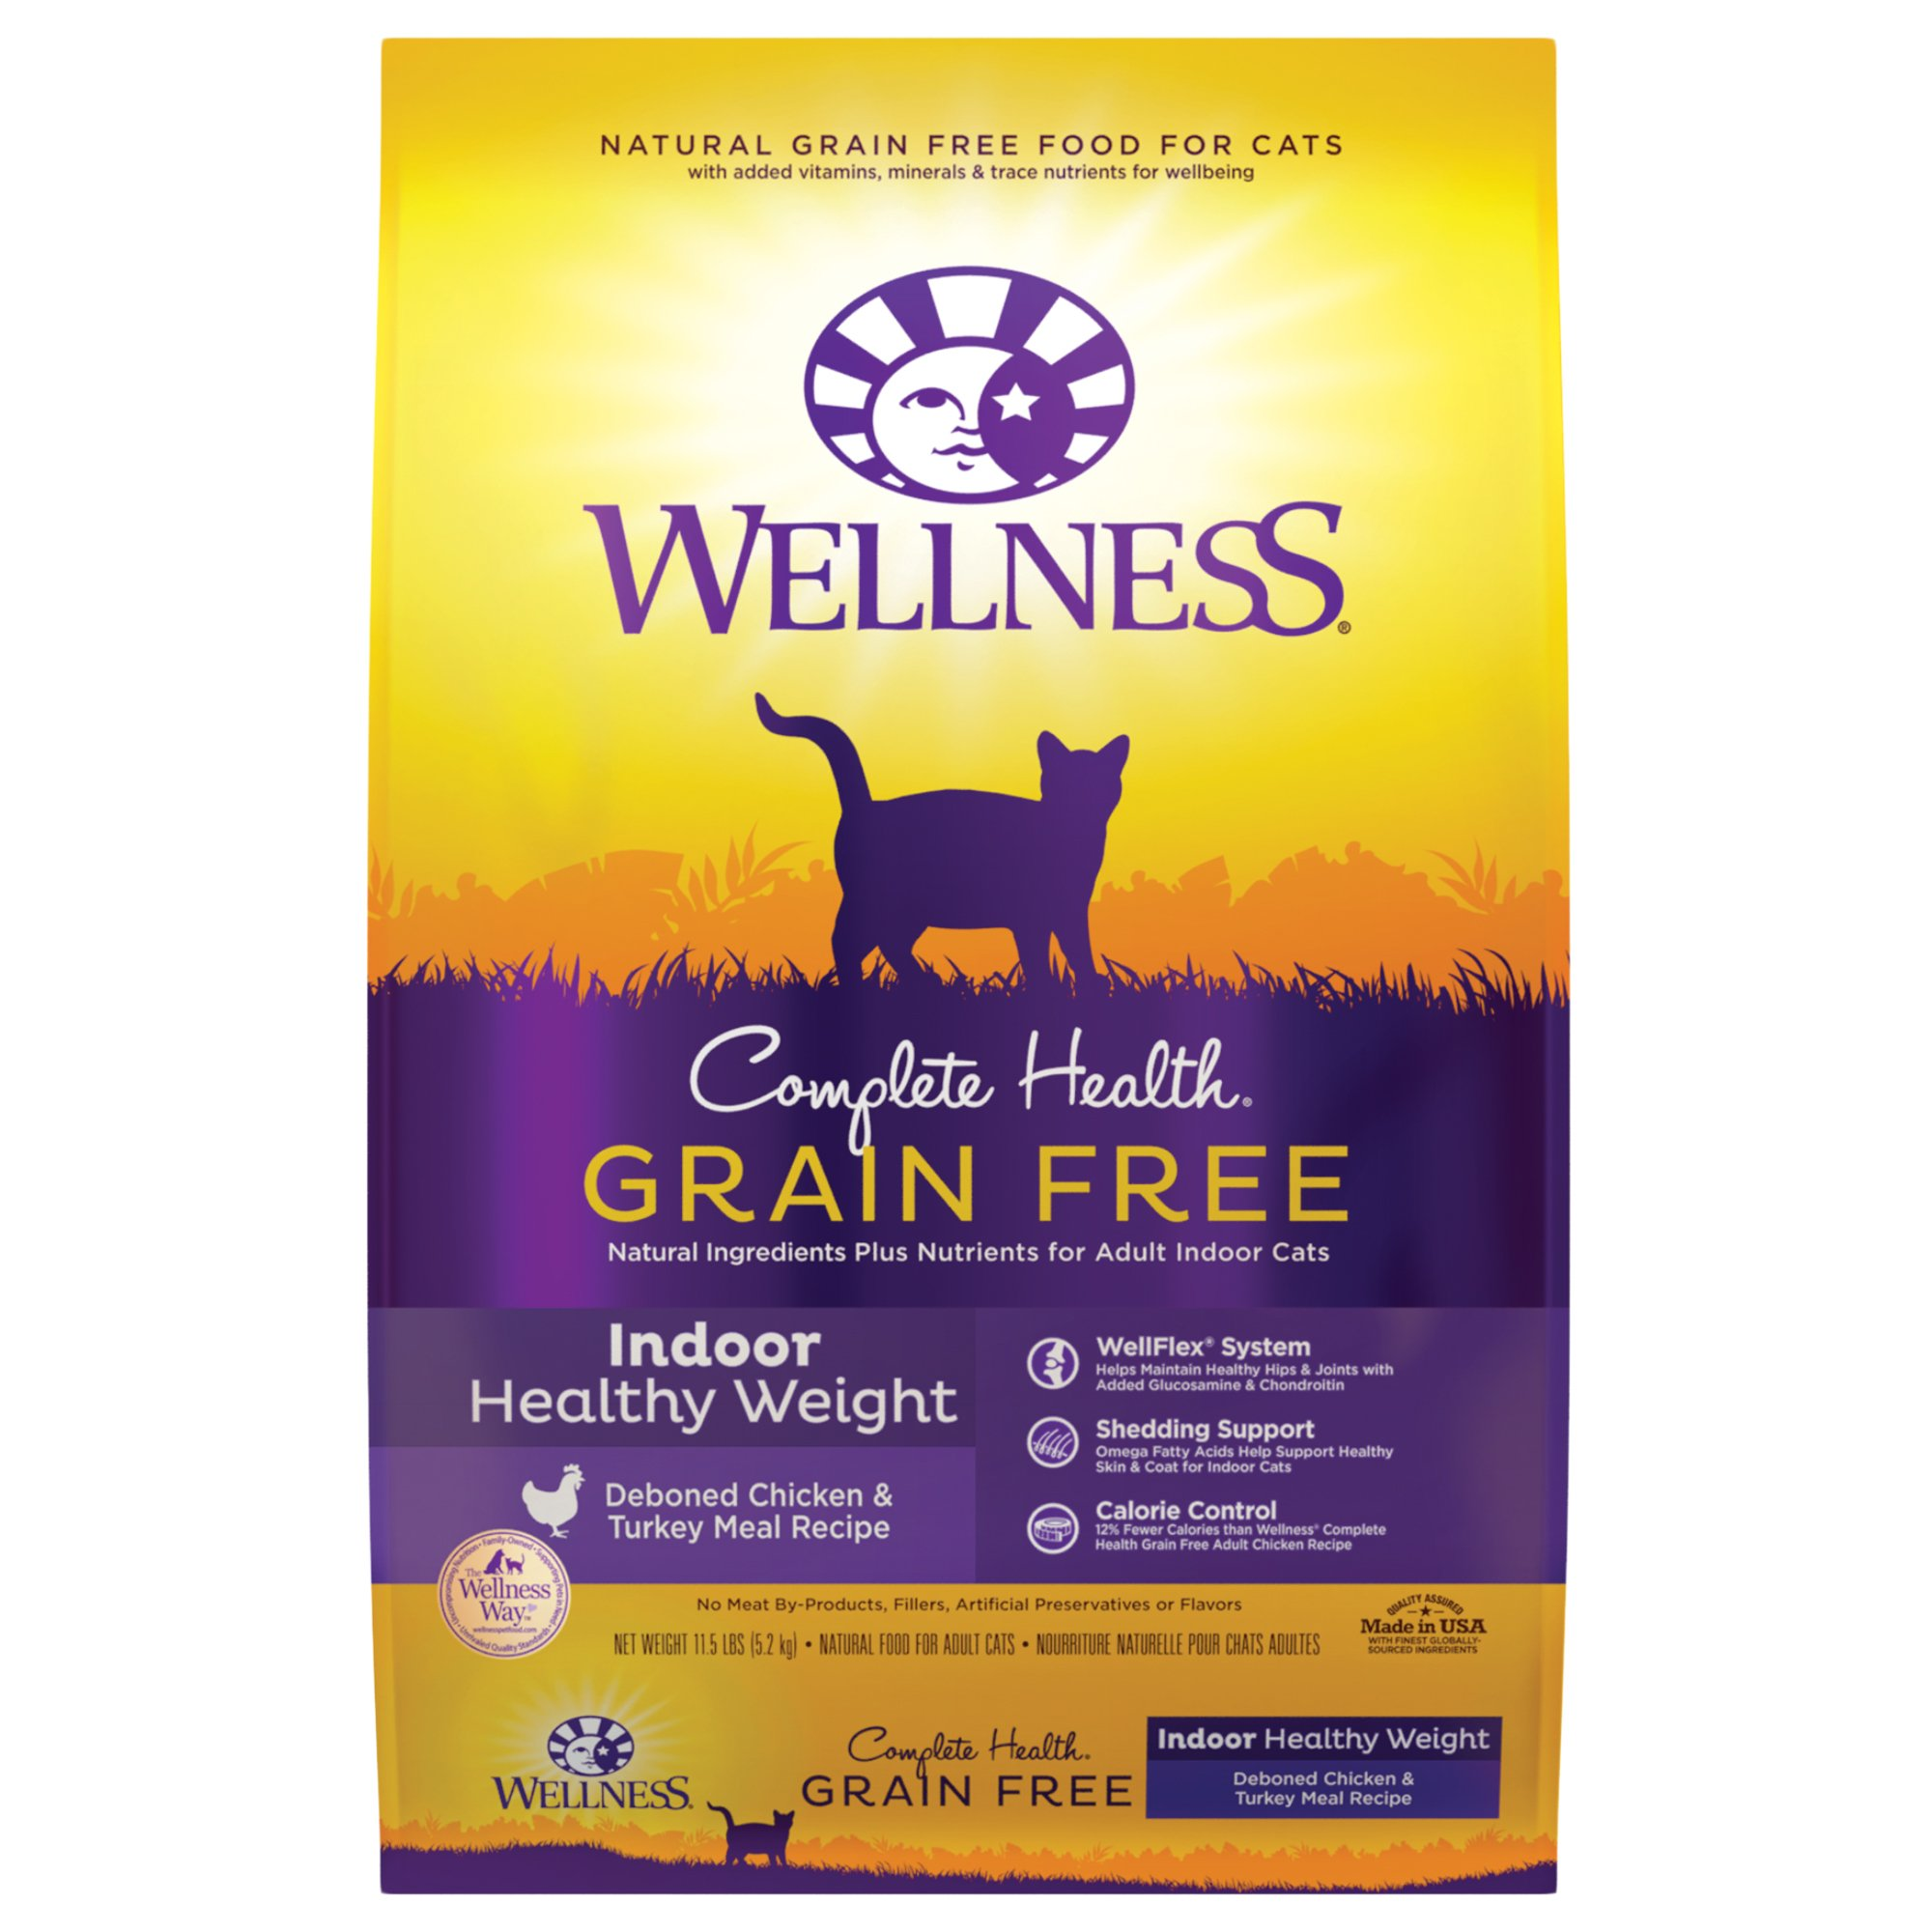 Wellness Complete Health Grain Free Natural Dry Cat Food, Indoor Healthy Weight Chicken Recipe, 11.5-Pound Bag by Wellness Natural Pet Food